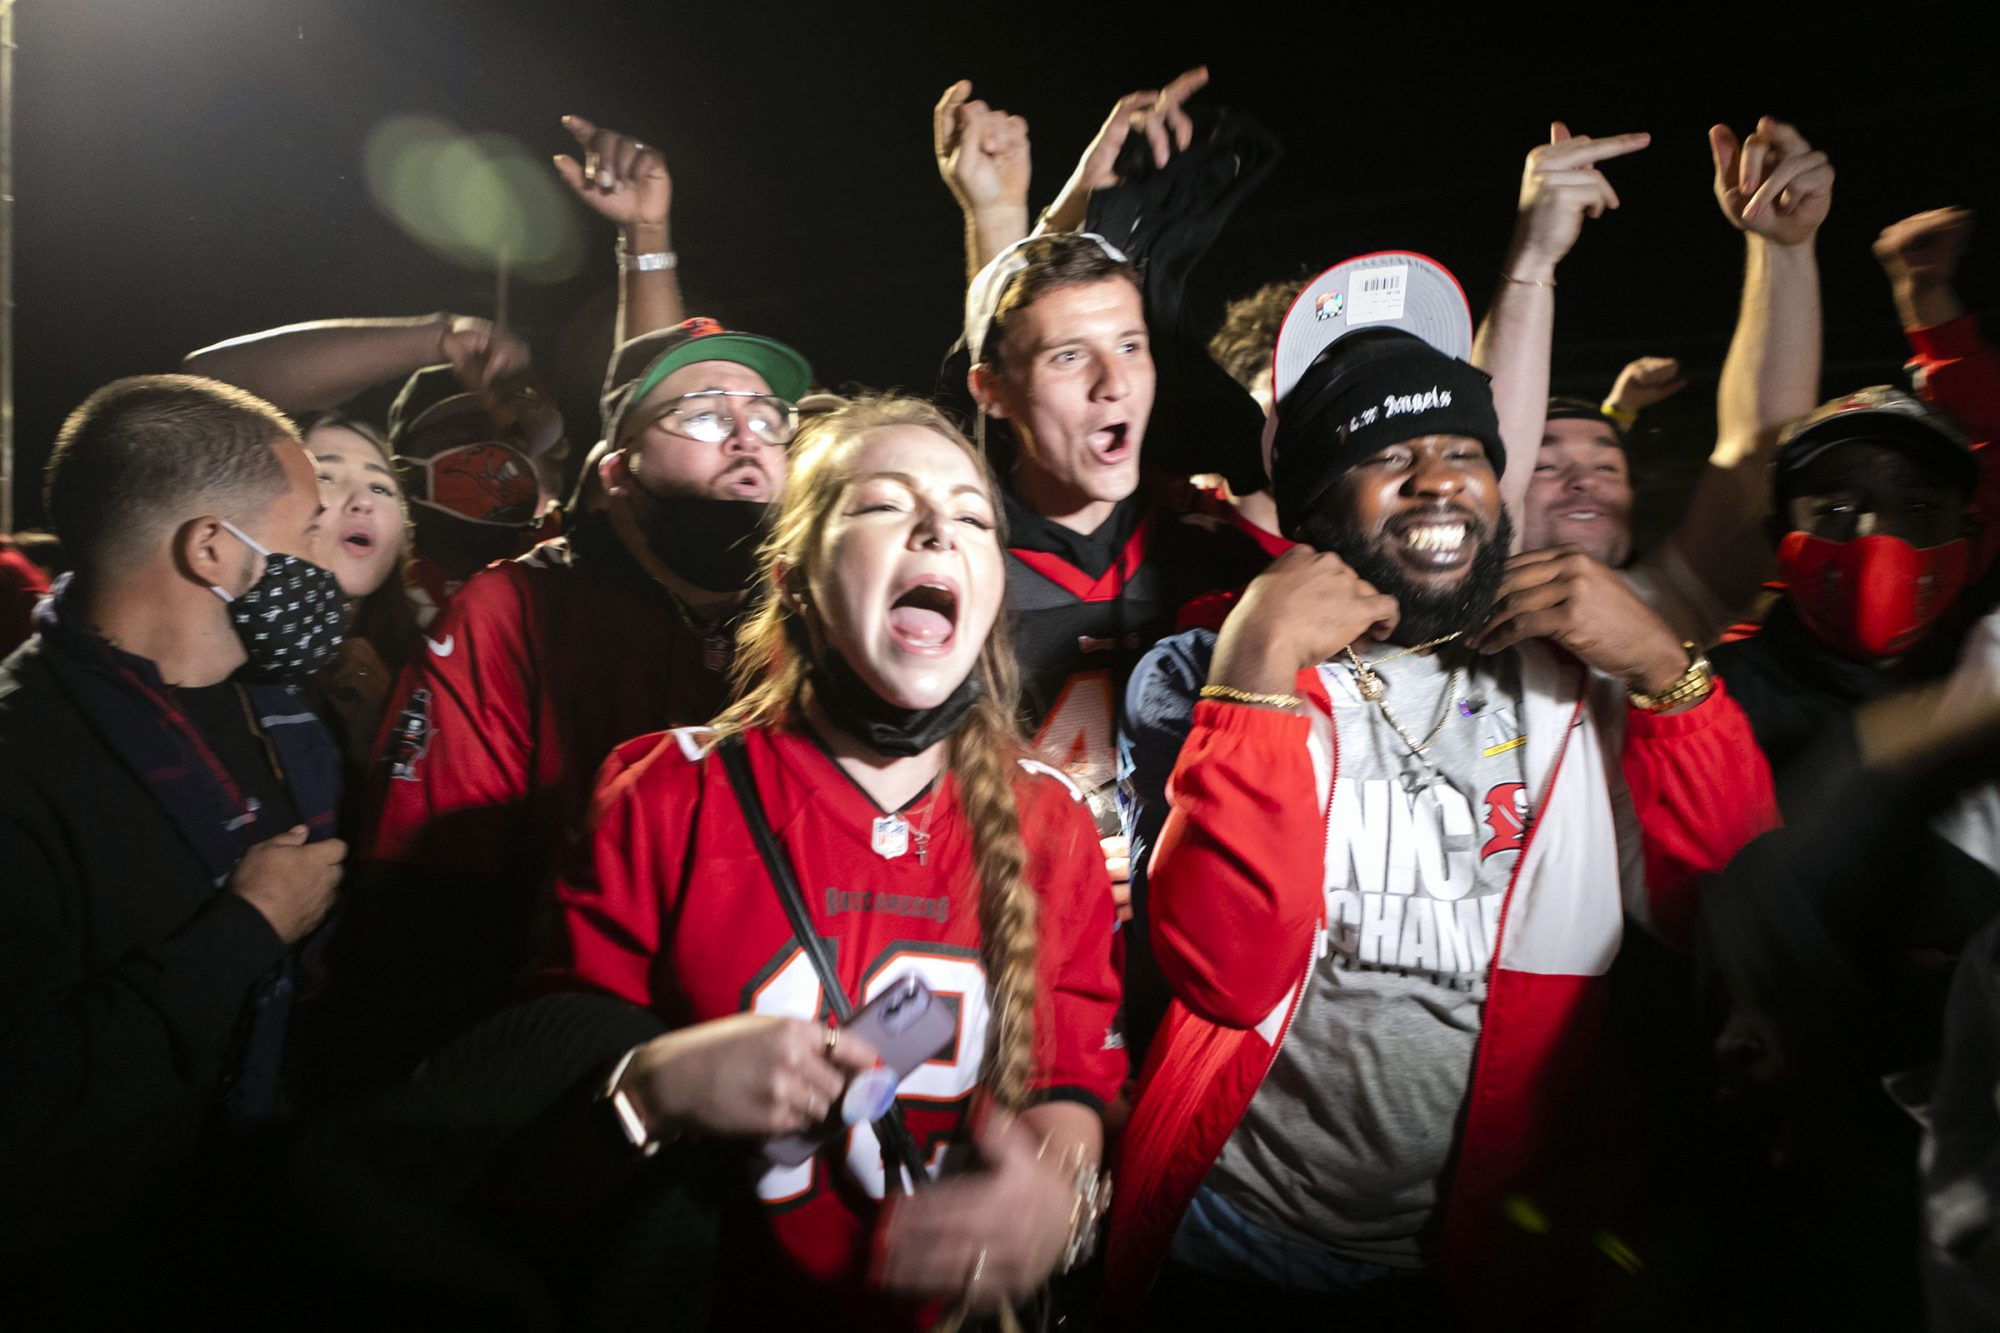 Tampa Bay Buccaneers fans celebrate their victory over the Kansas City Chiefs during Super Bowl LV in a street in downtown Tampa